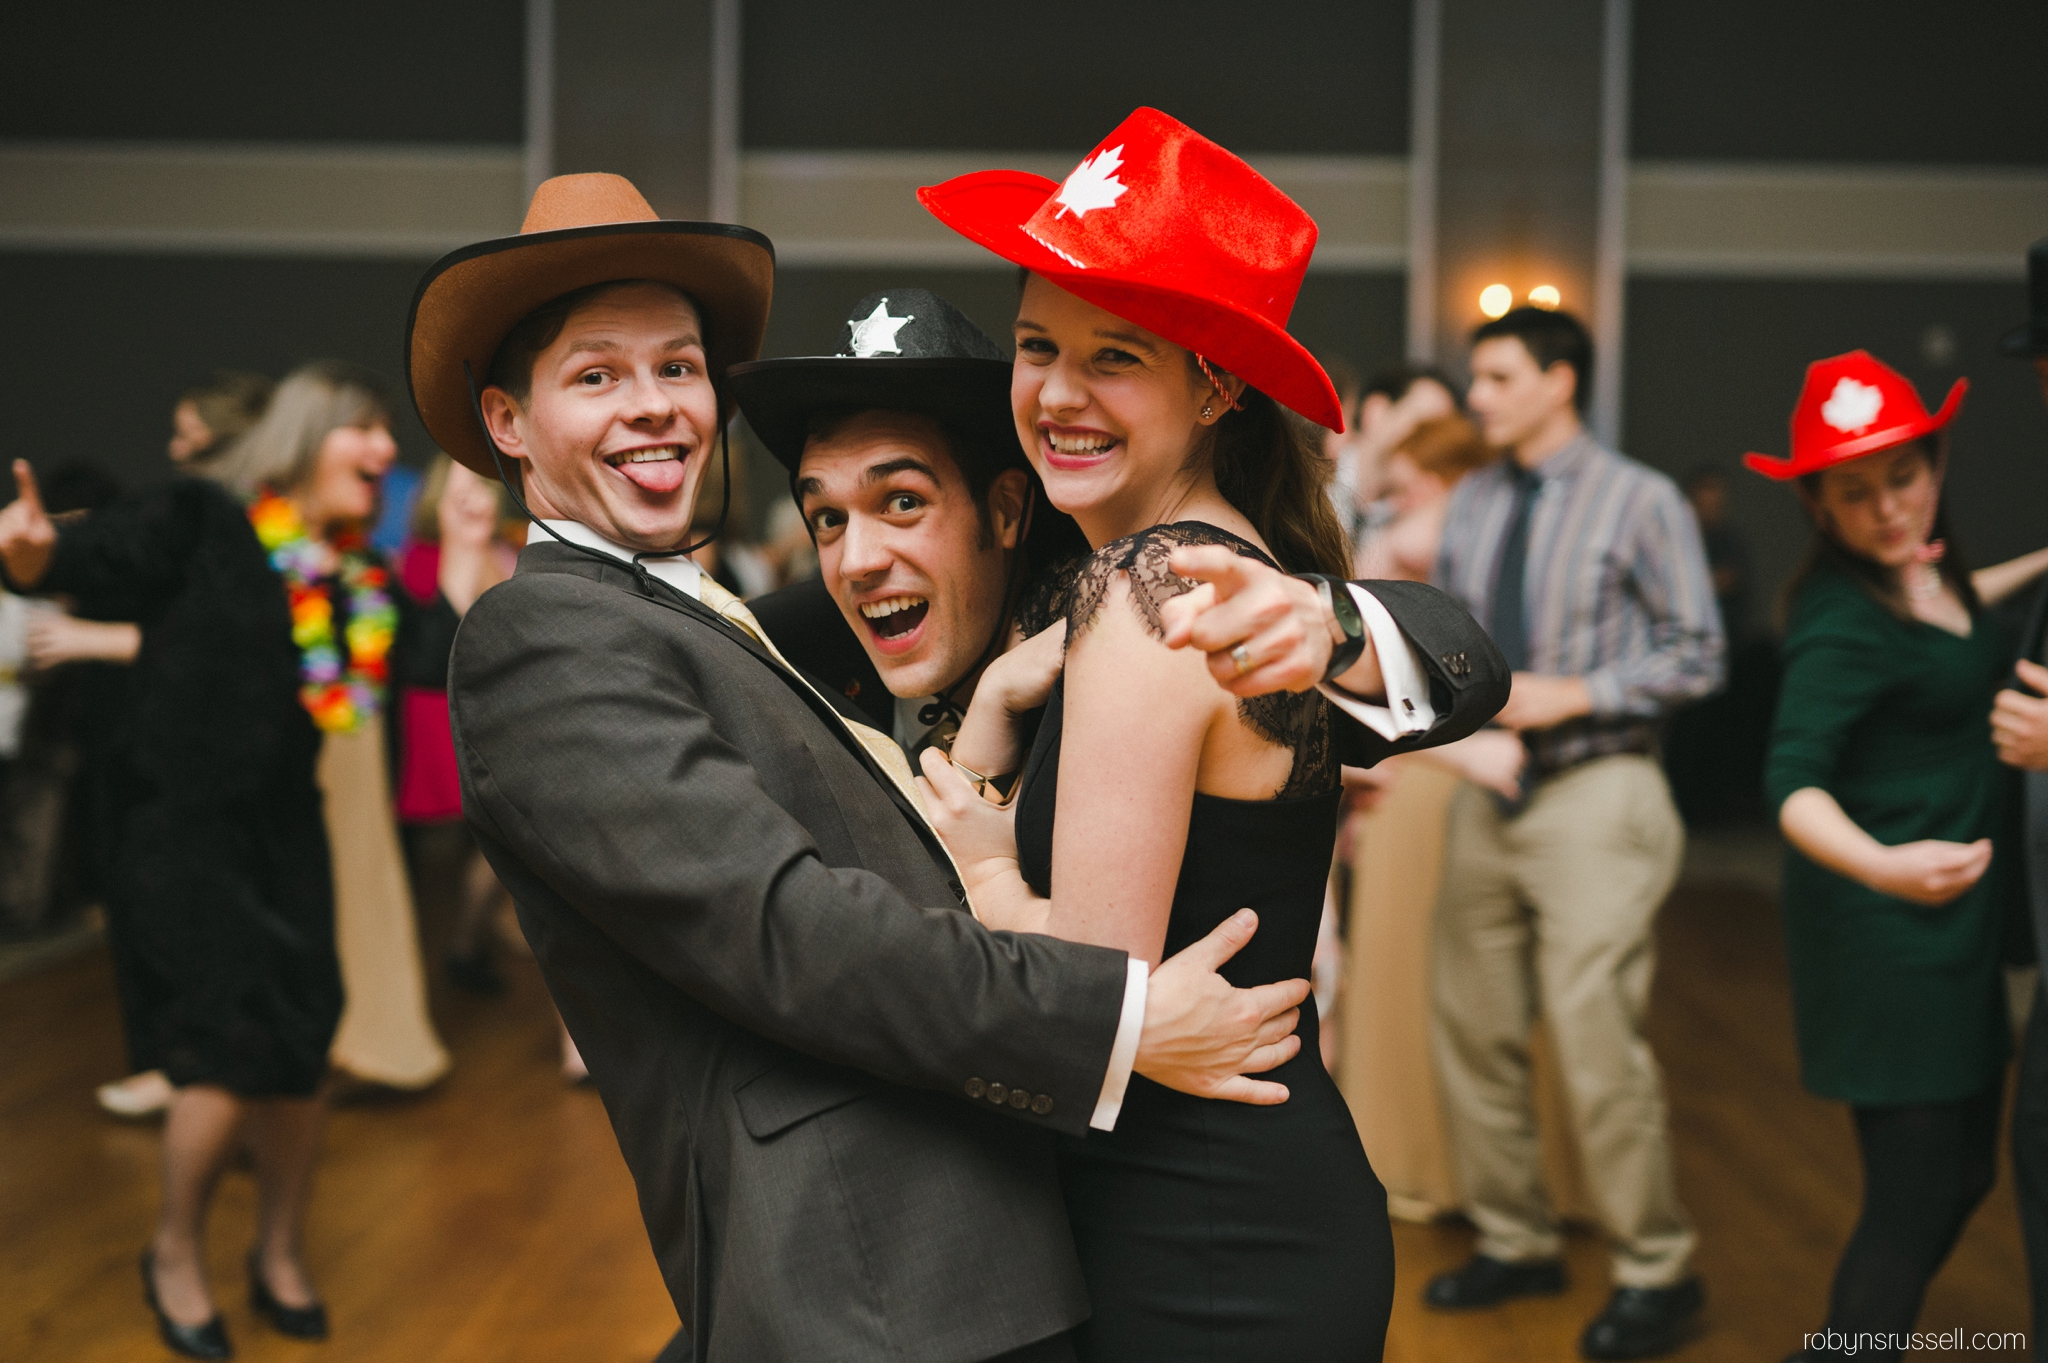 70-groom-with-friends-at-dance.jpg